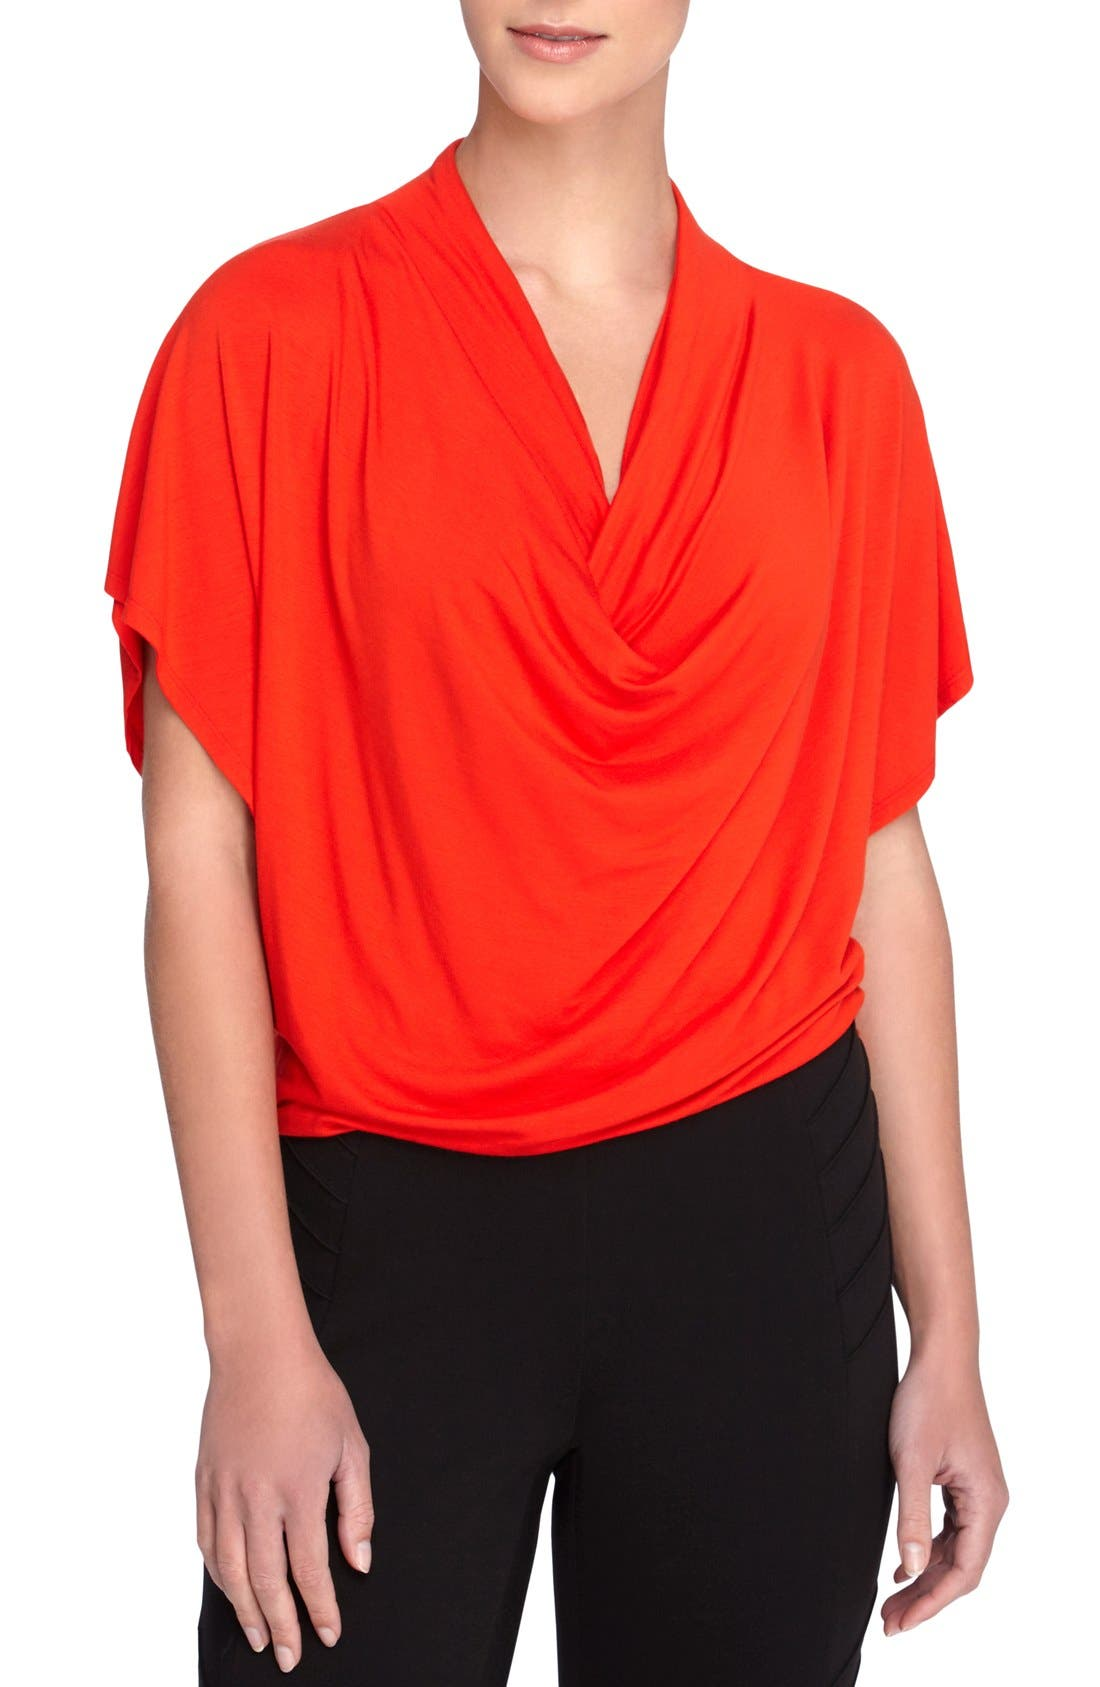 CATHERINE CATHERINE MALANDRINO 'Pearce' Drape Neck Top